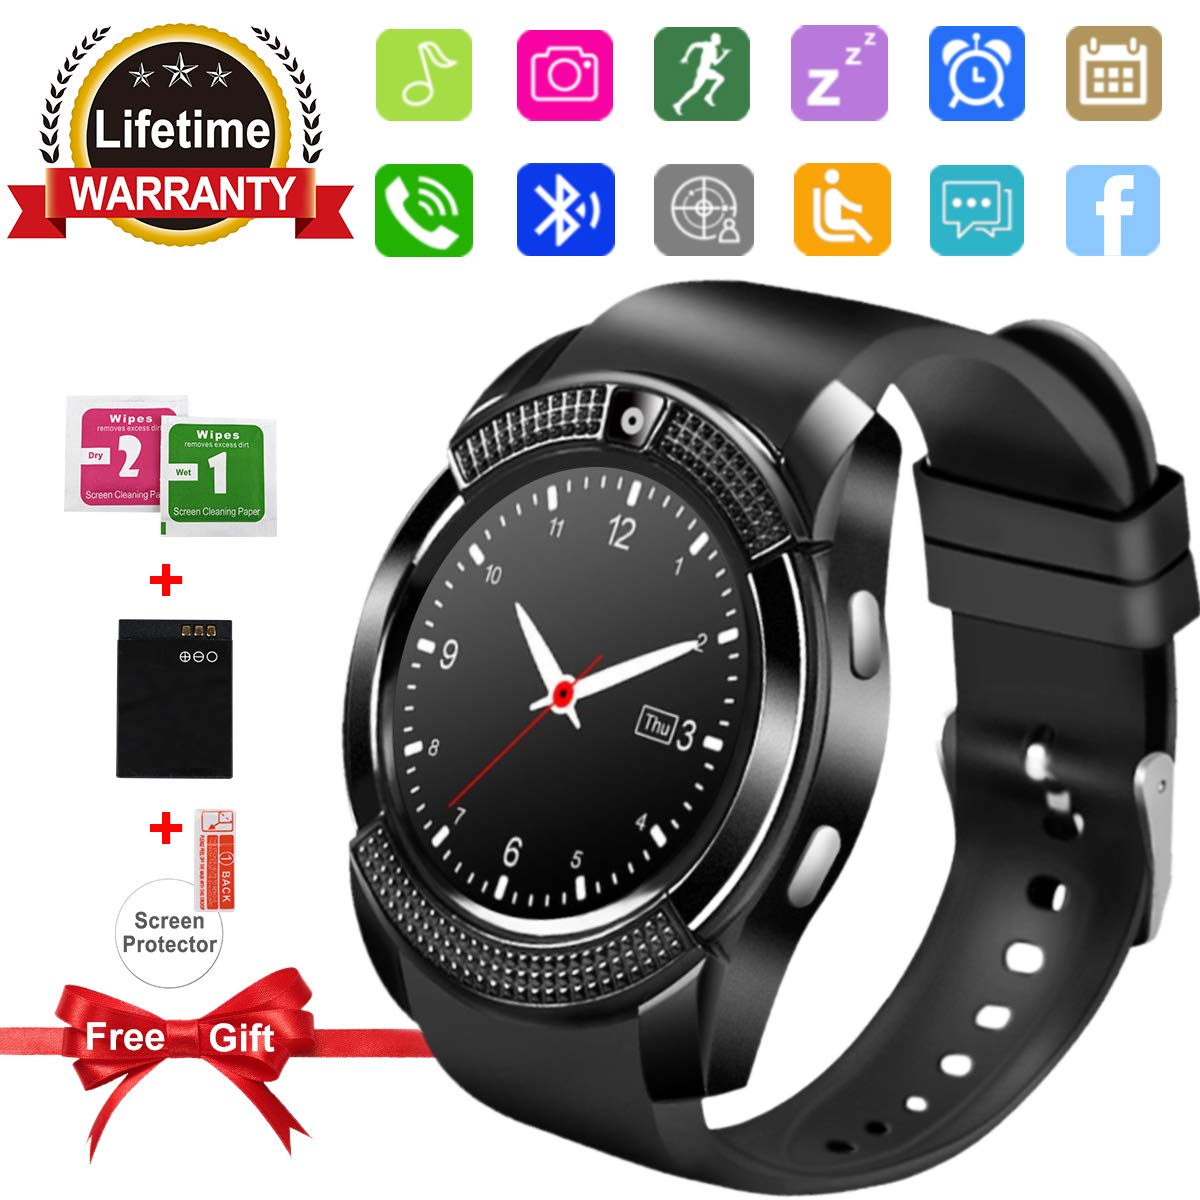 Smart Watch,Bluetooth SmartWatch with Camera Touchscreen,Smart Watches Waterproof Unlocked Phones Watch with SIM Card Slot,SmartWatches Compatible ...